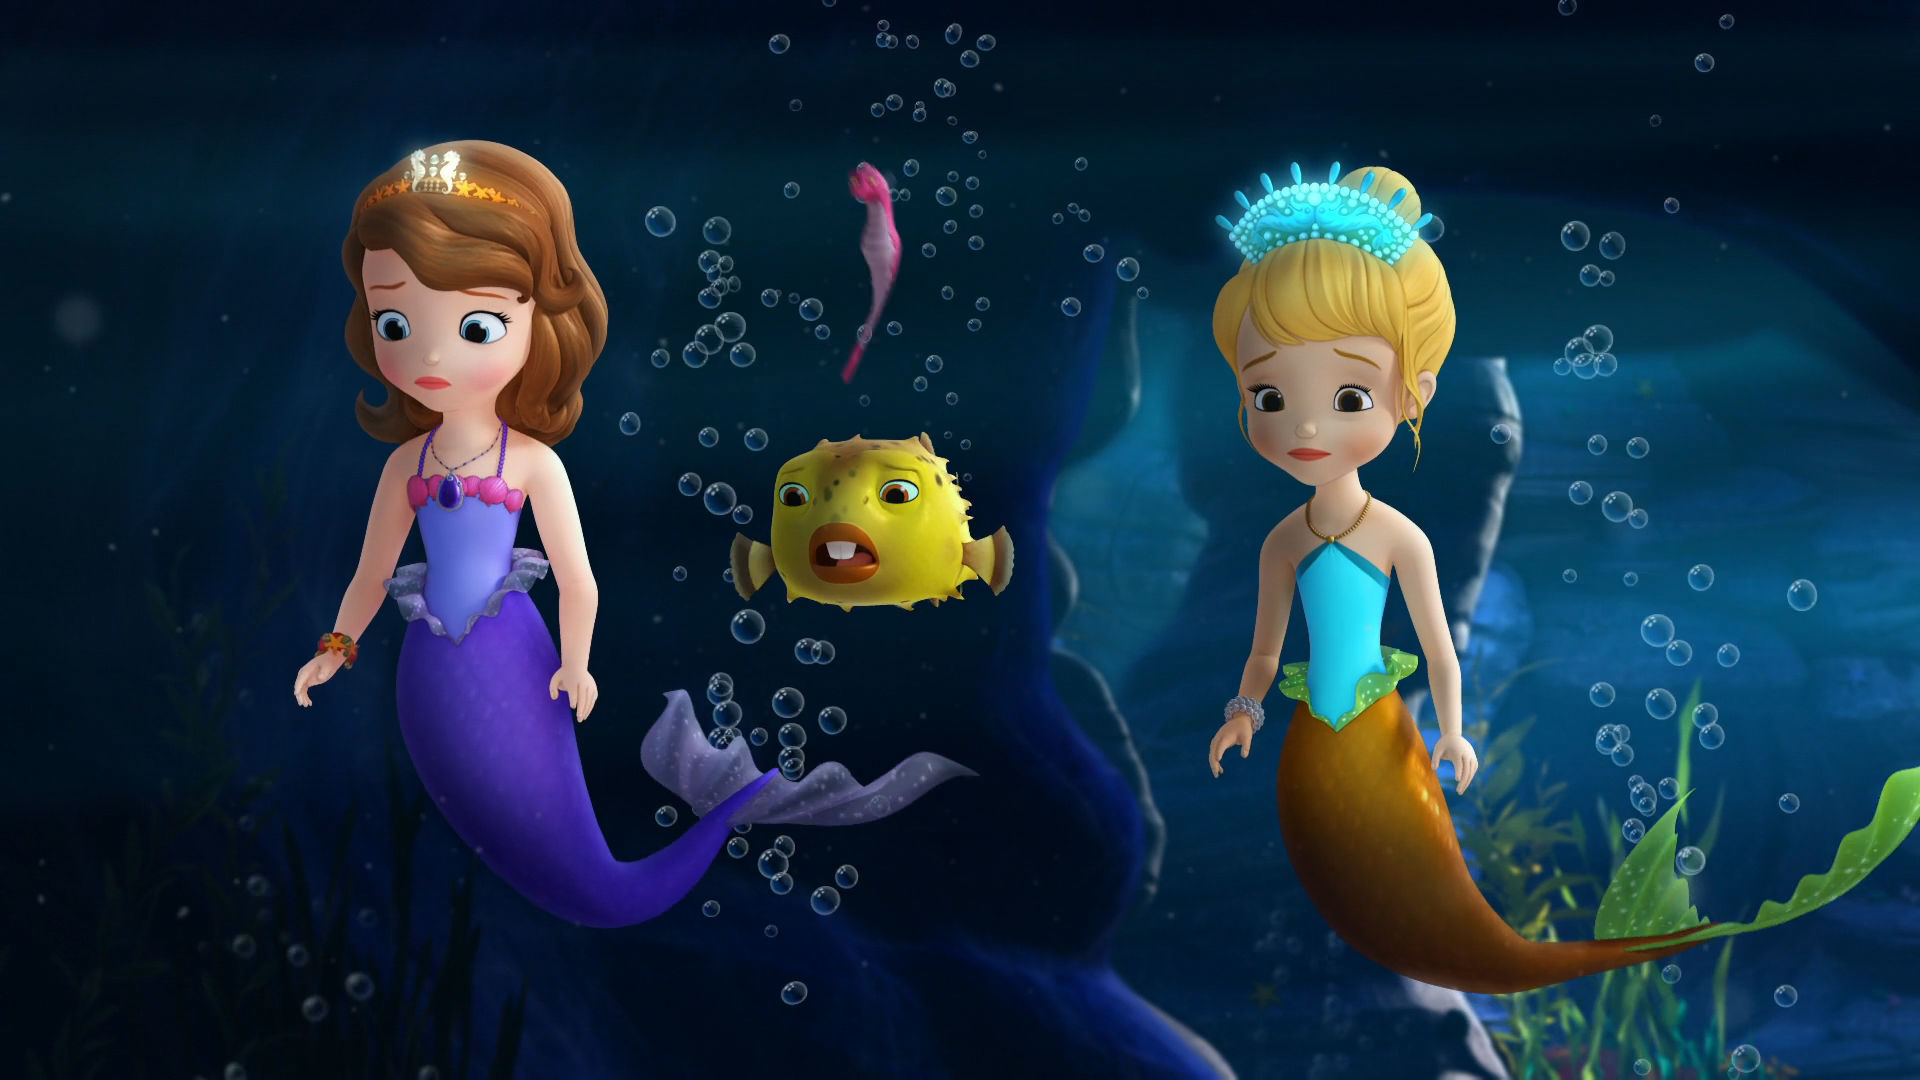 Clover time sofia the first the floating palace disney junior